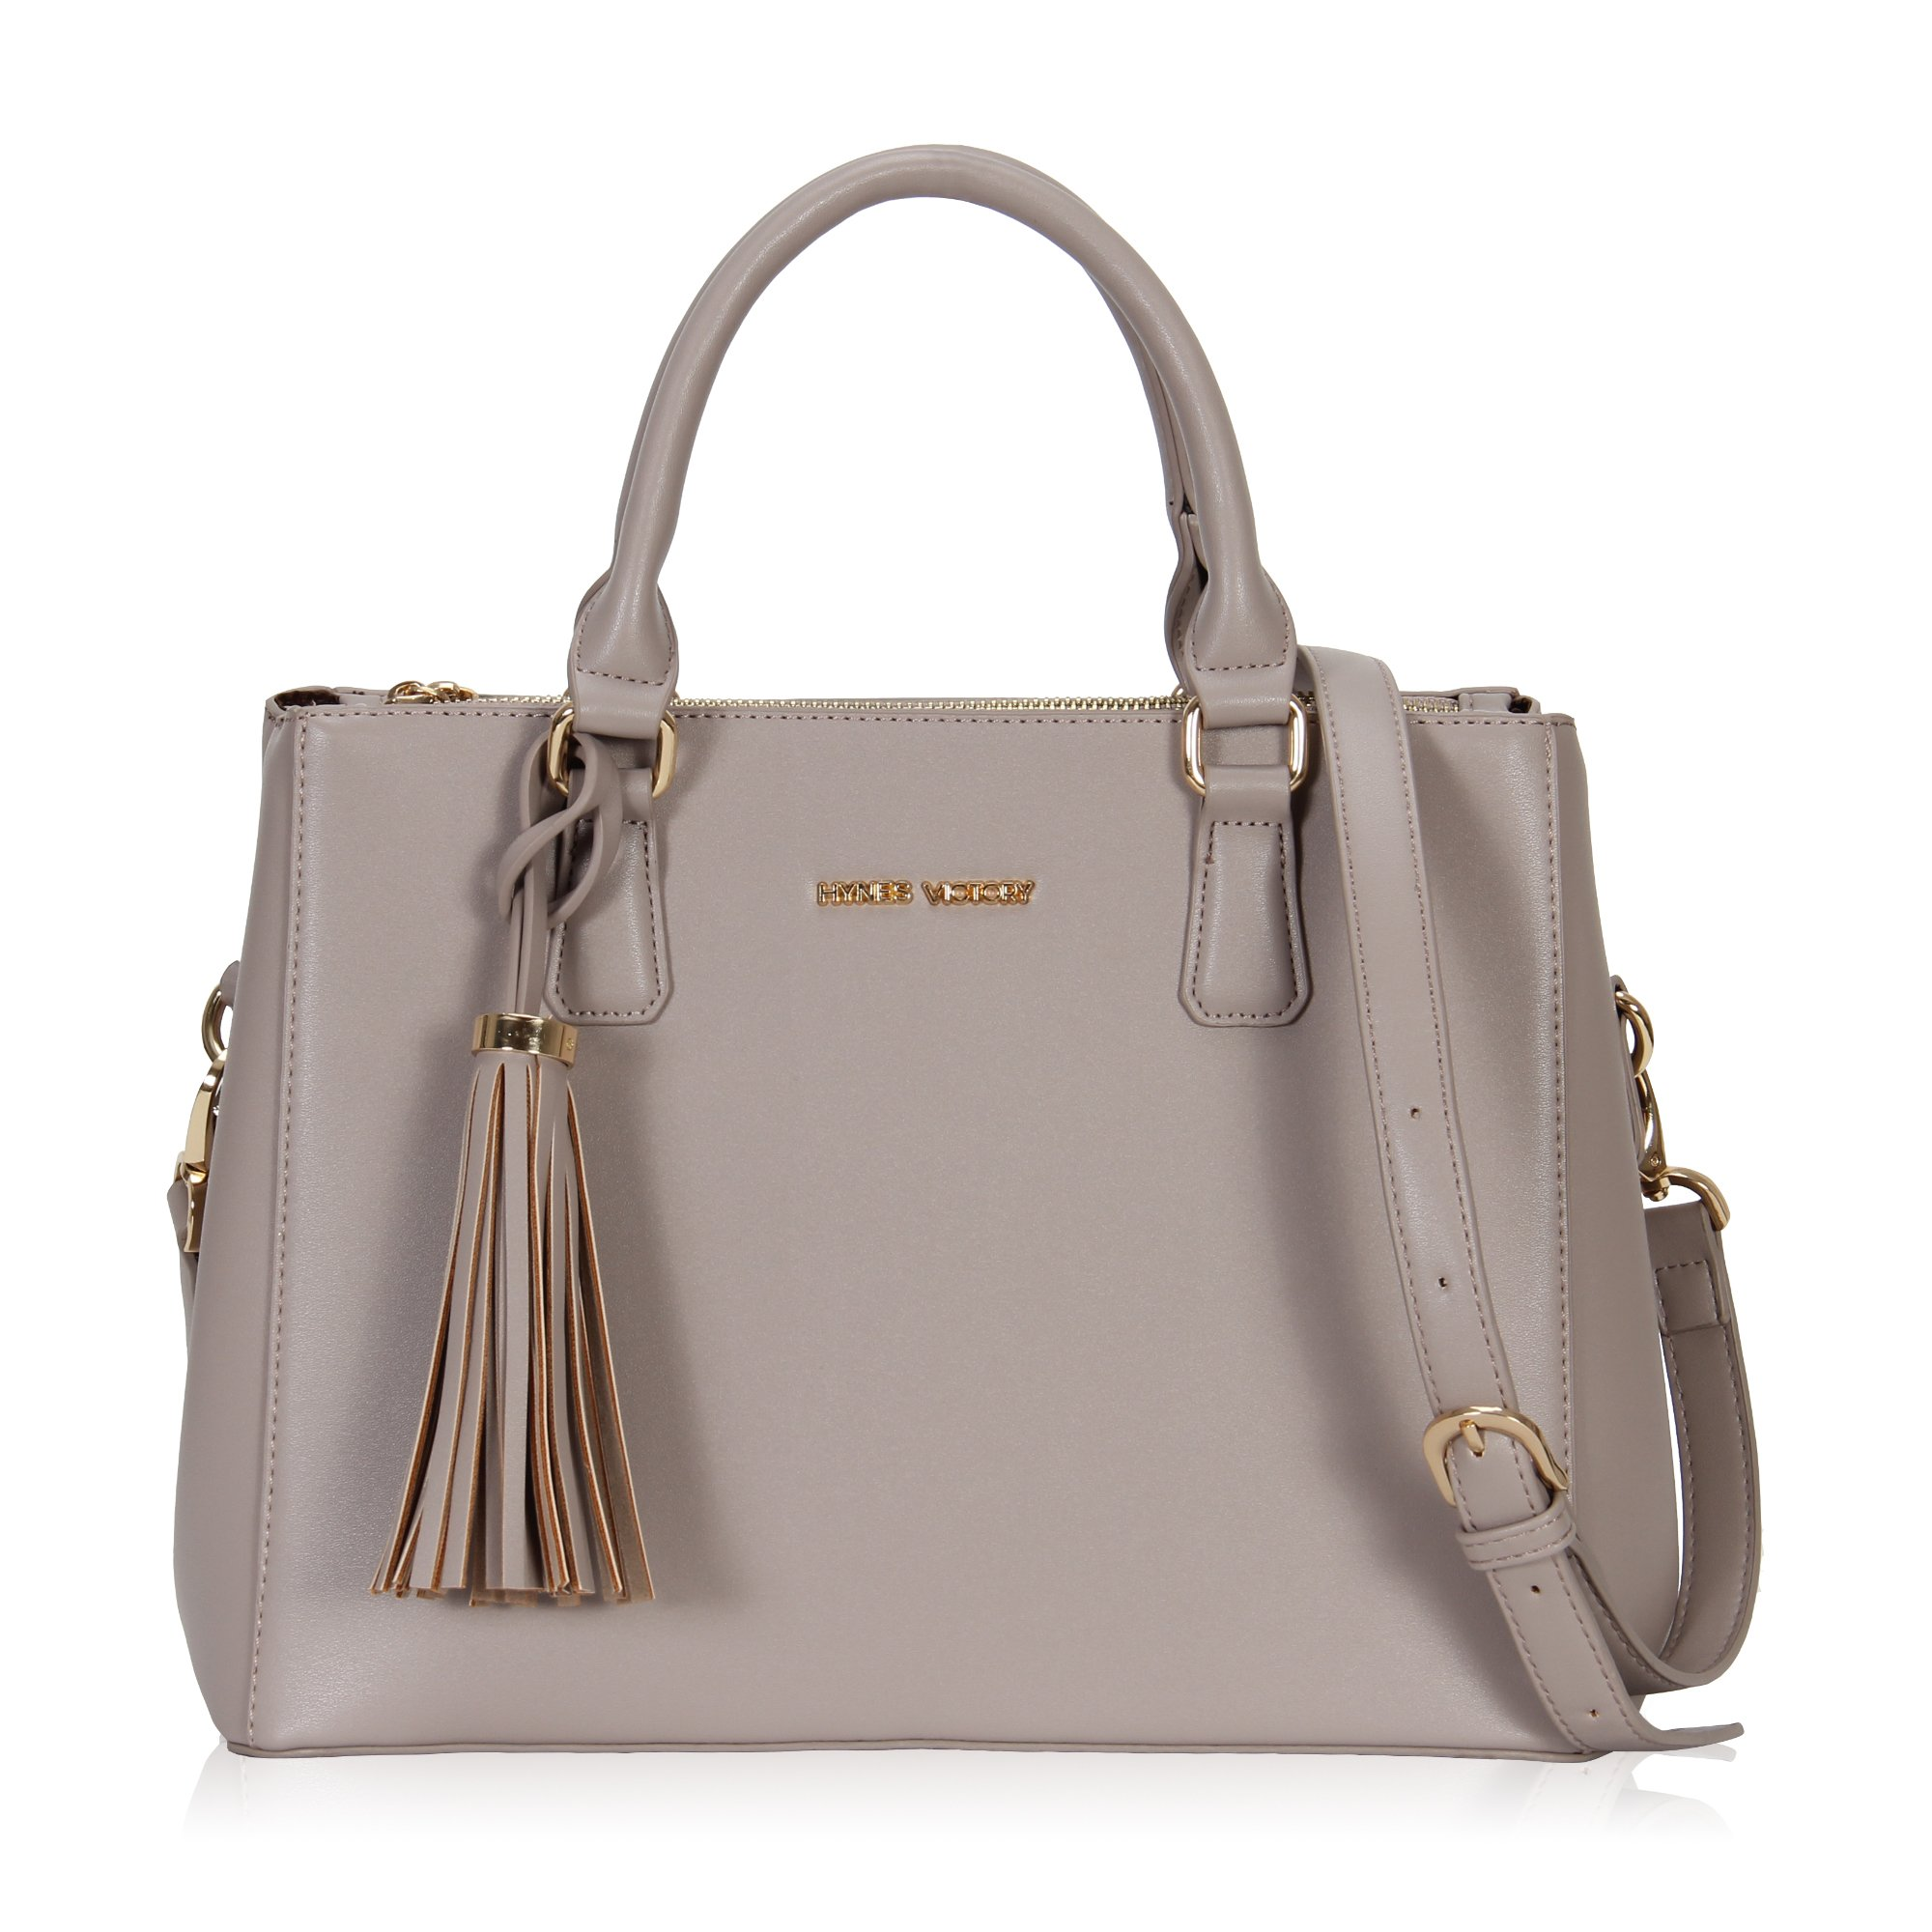 Hynes Victory Womens Classy Satchel Handbag Griege with tassel by Hynes Victory (Image #1)